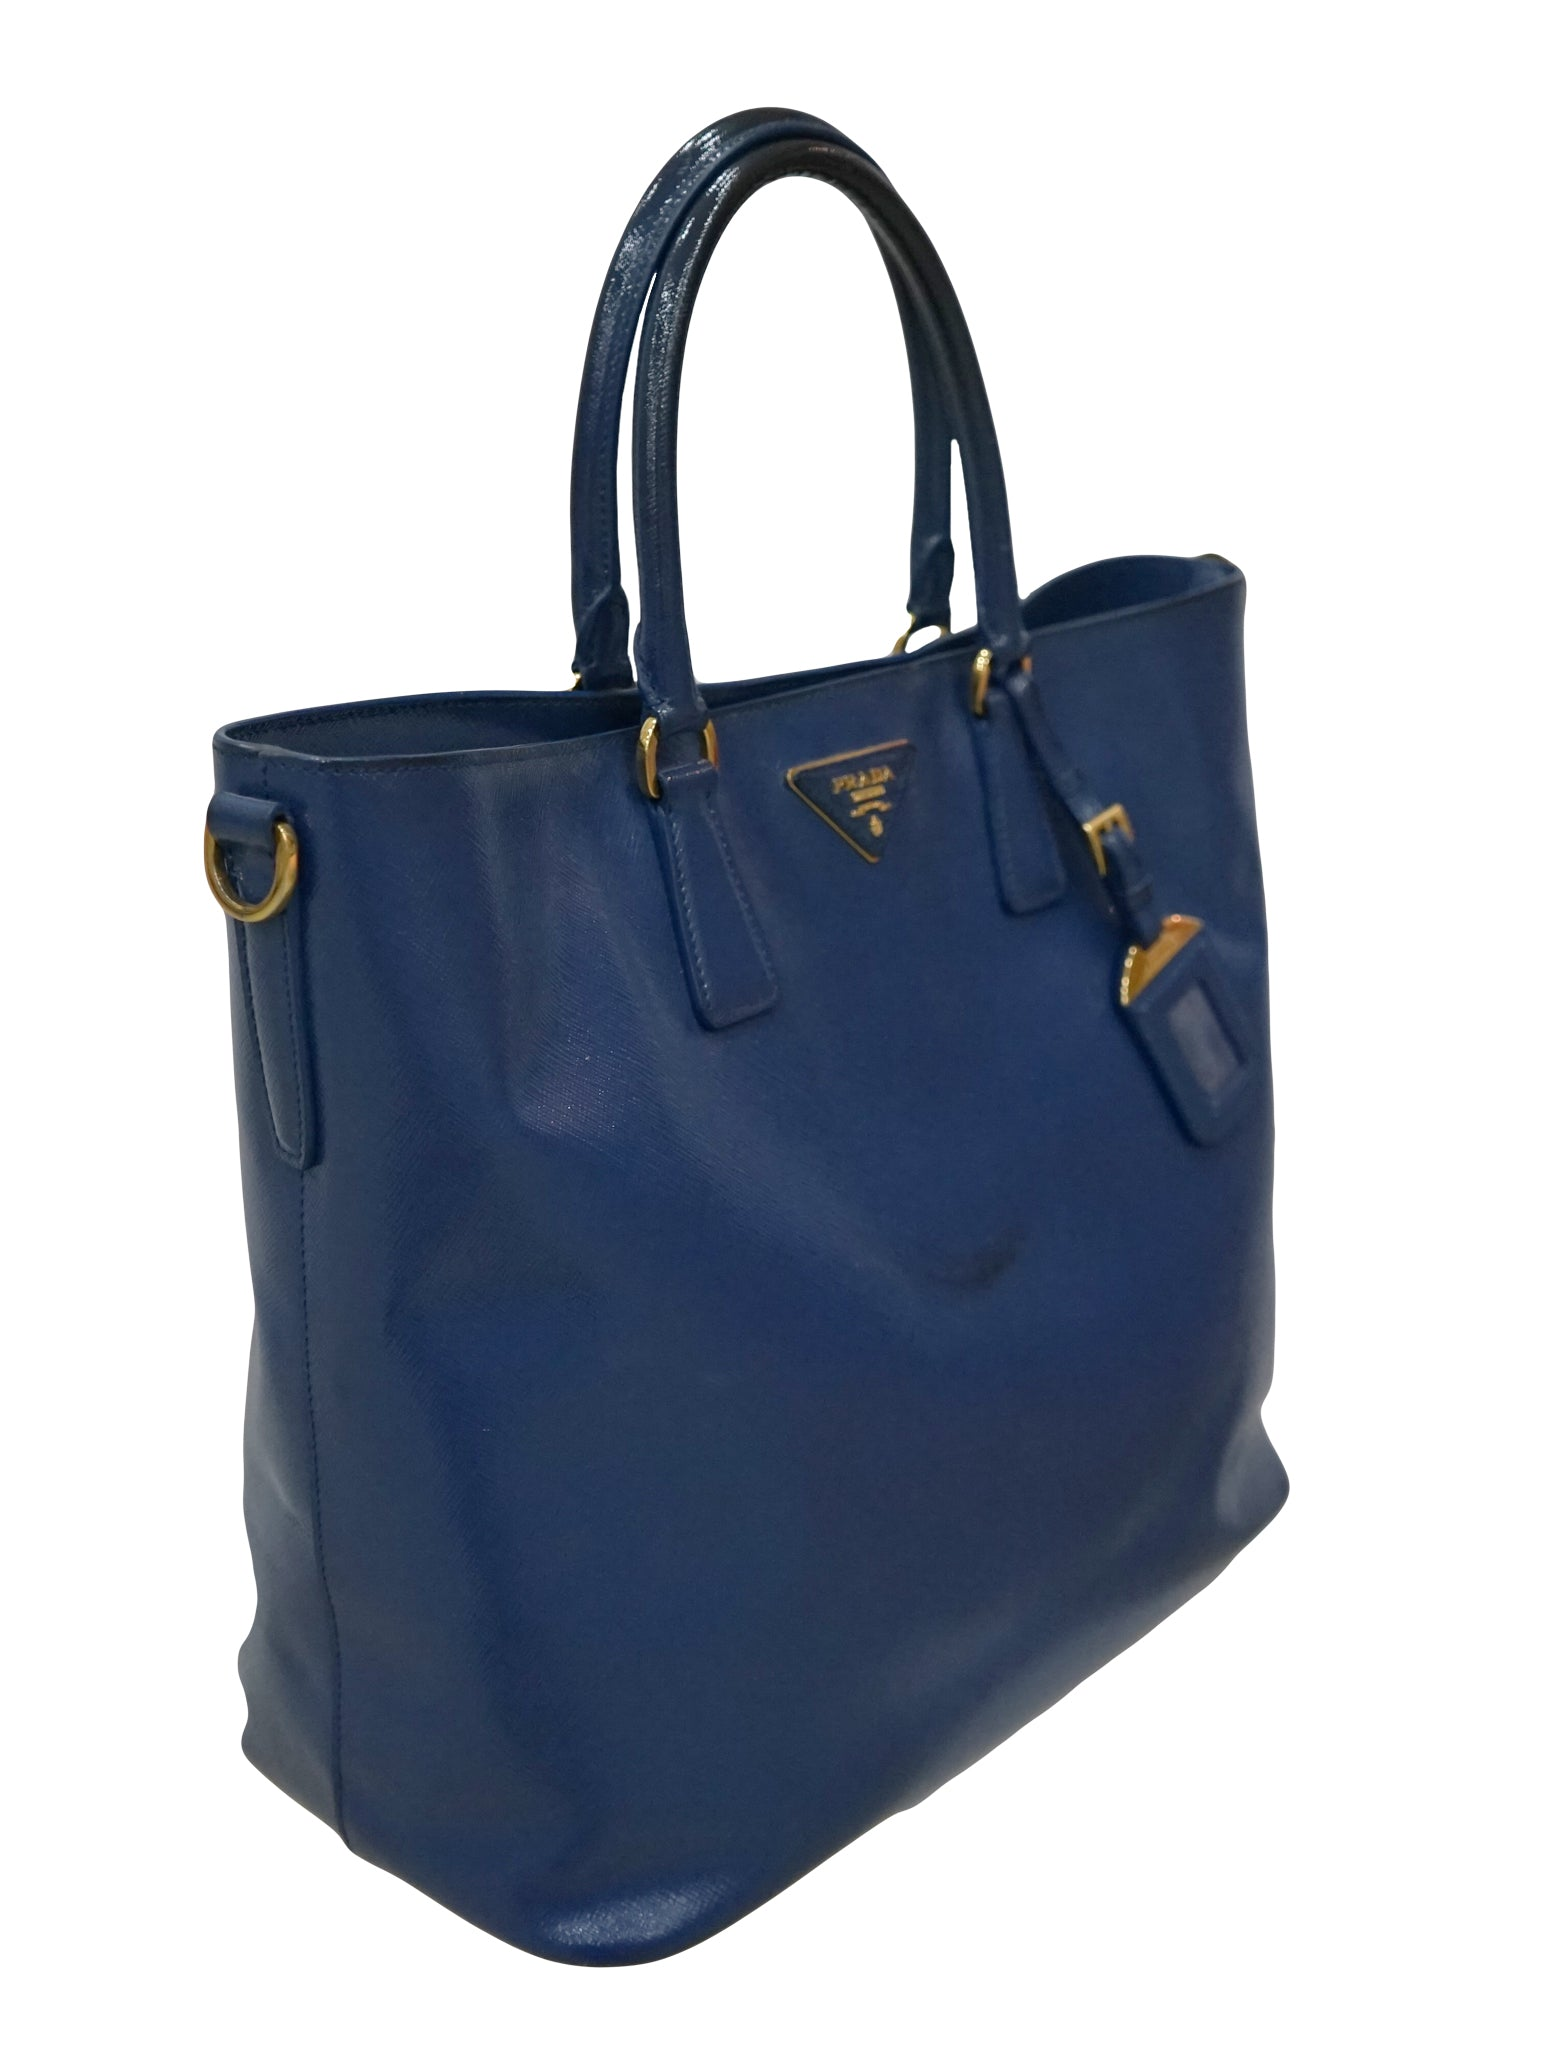 BLUE PATENT SHOPPING TOTE